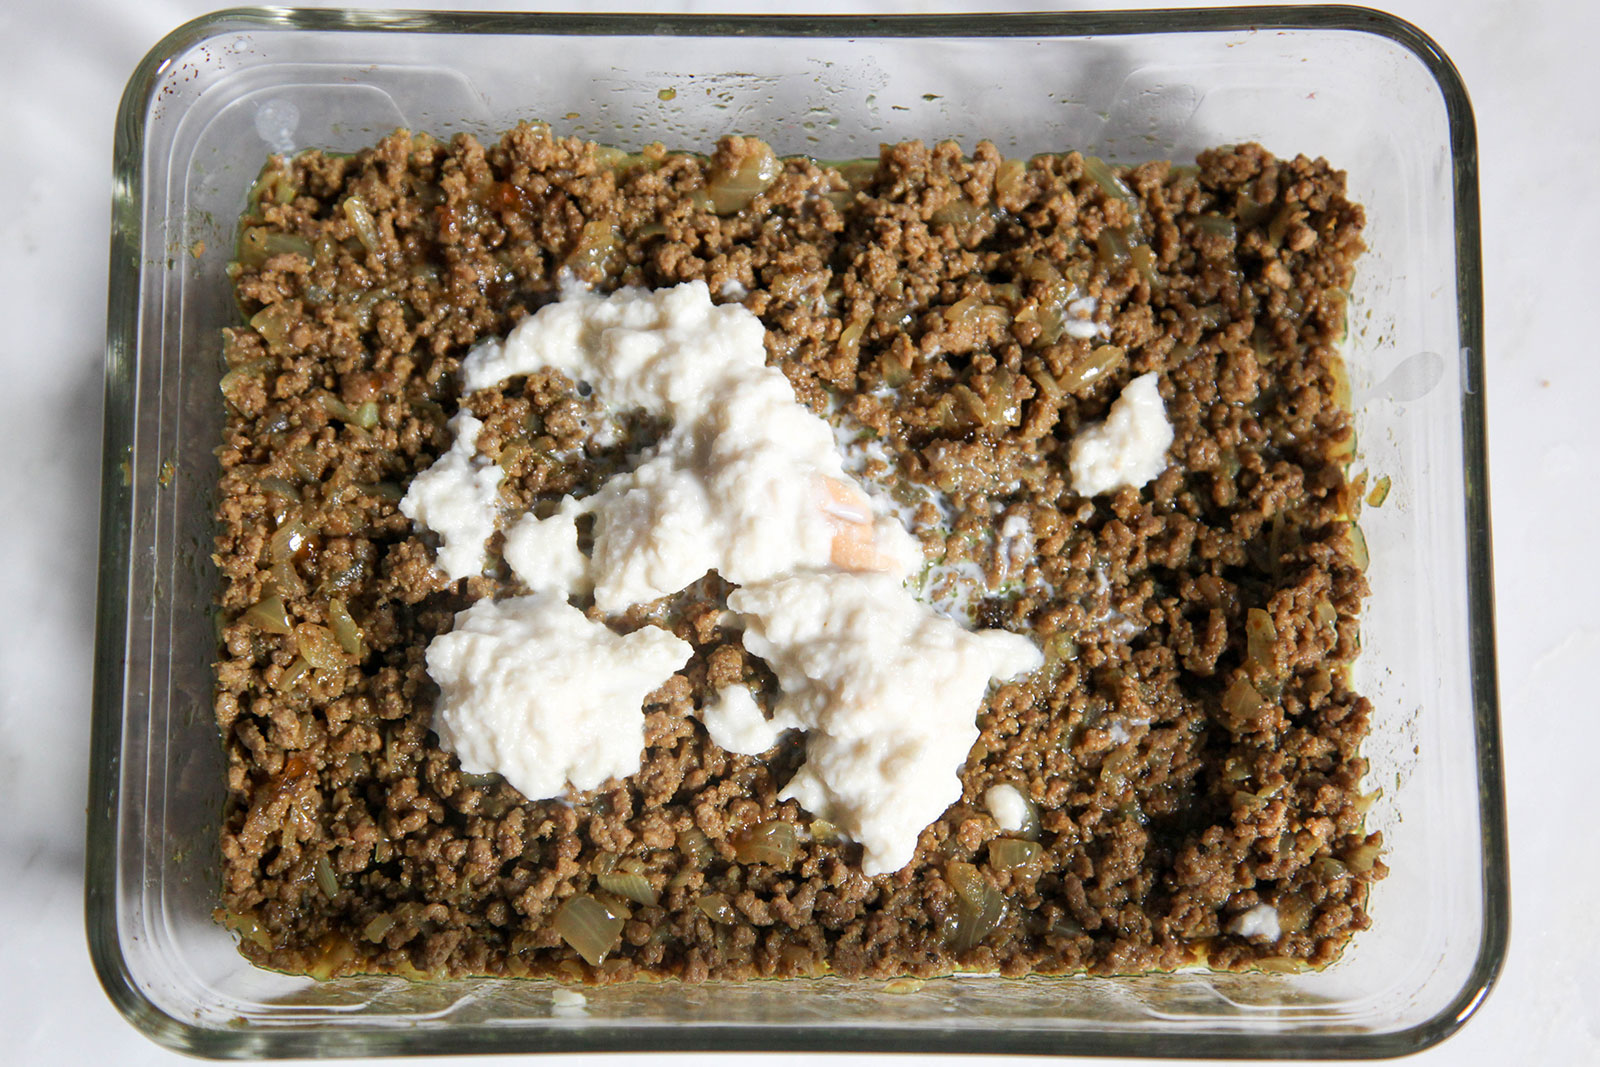 bread drained of milk and mashed, for mixing with ground meat